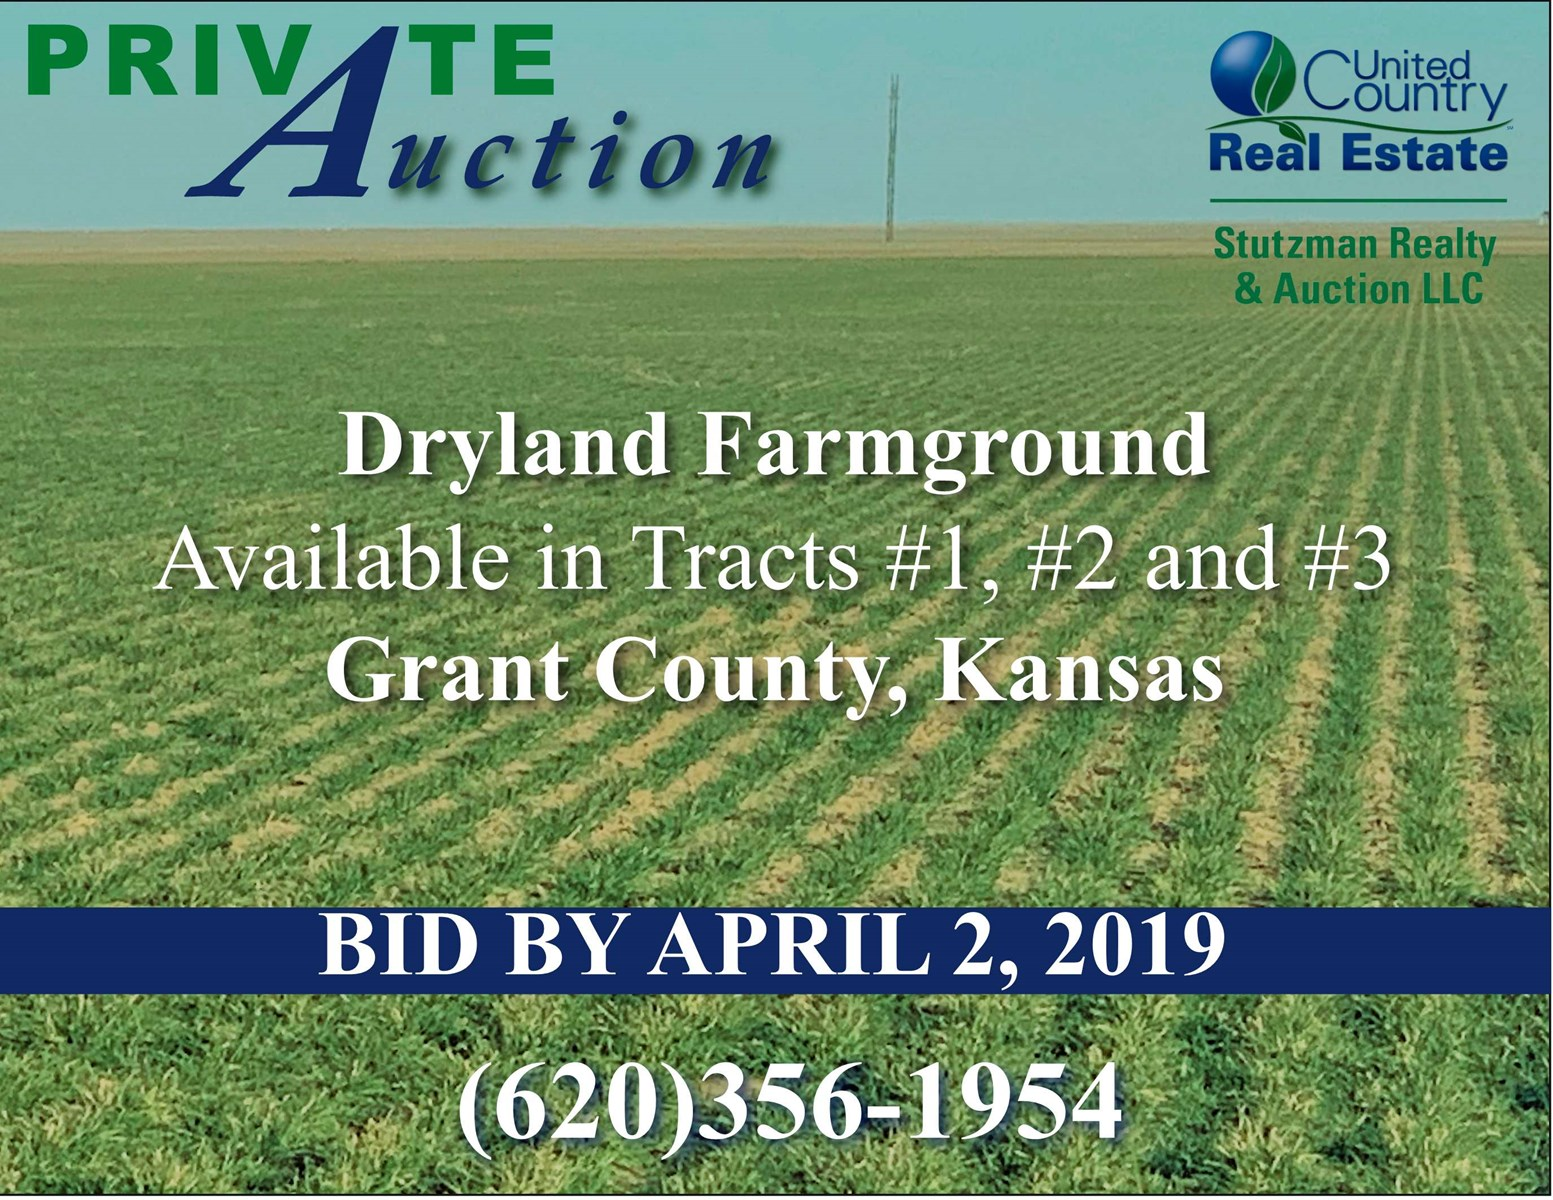 GRANT COUNTY, KS 472+/- ACRE FARM LAND - PRIVATE AUCTION